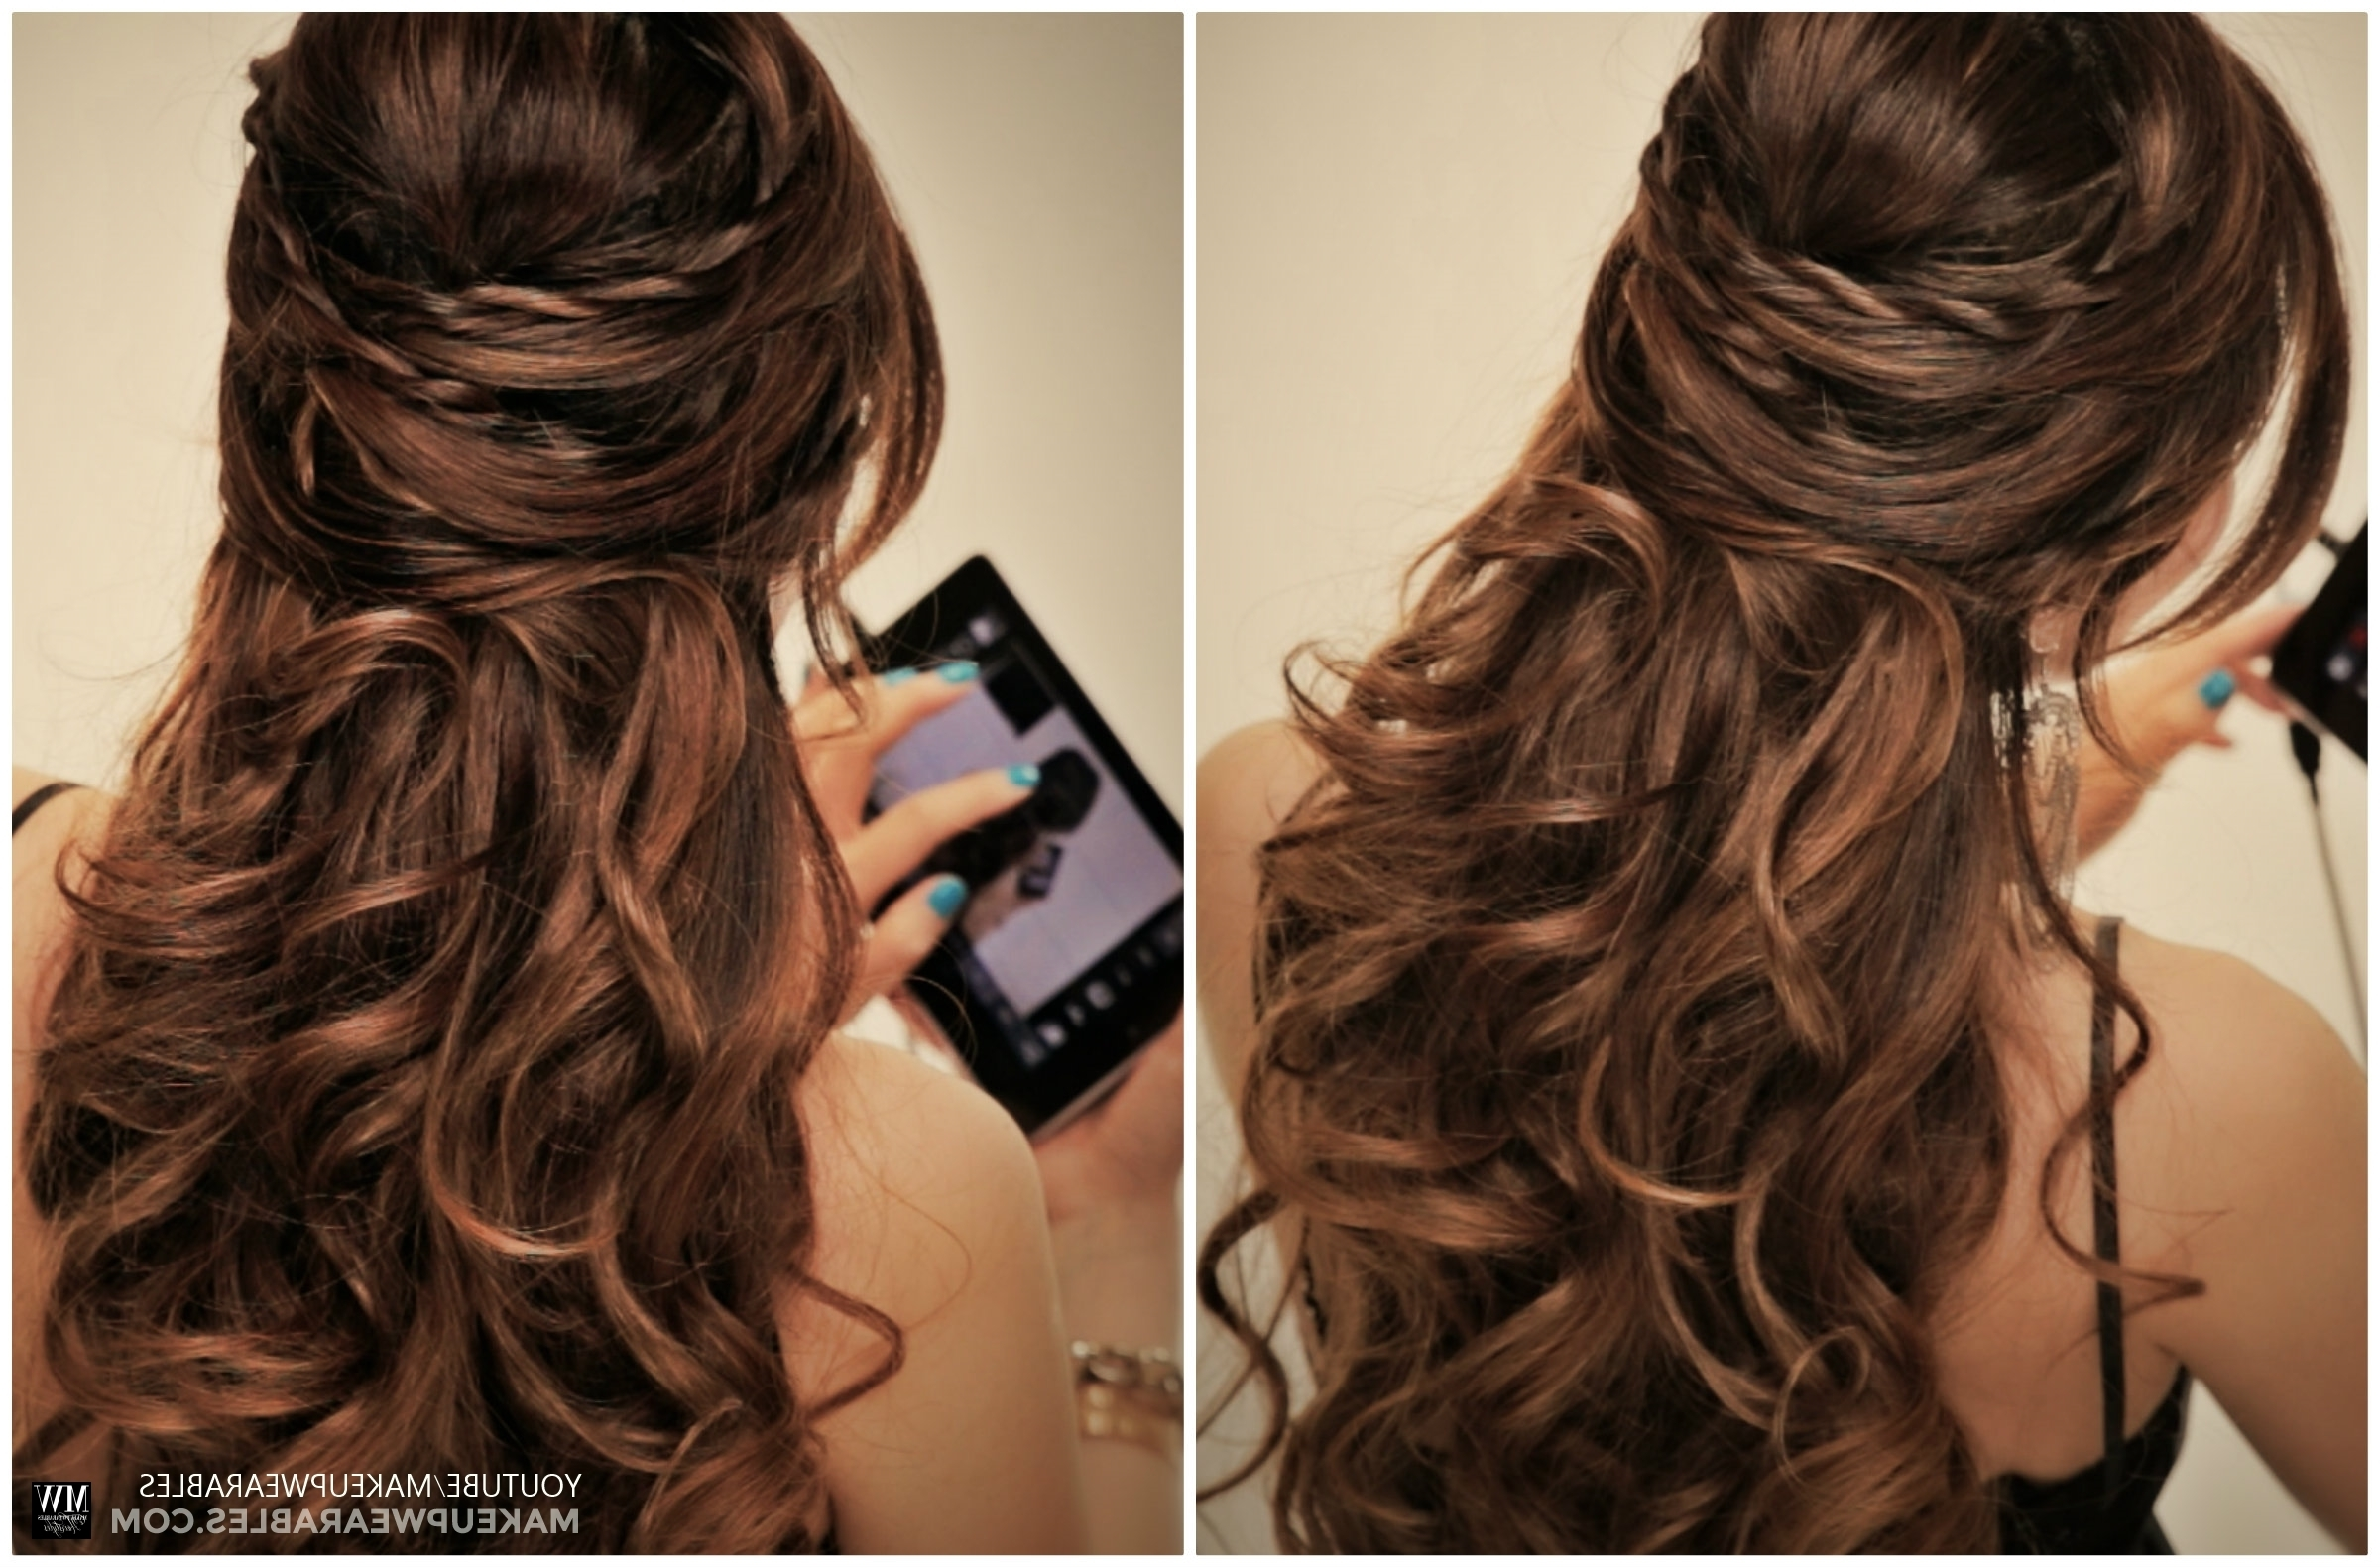 How To: 5 Amazingly Cute + Easy Hairstyles With A Simple Twist Within Popular Romantic Twisted Hairdo Hairstyles (View 12 of 20)